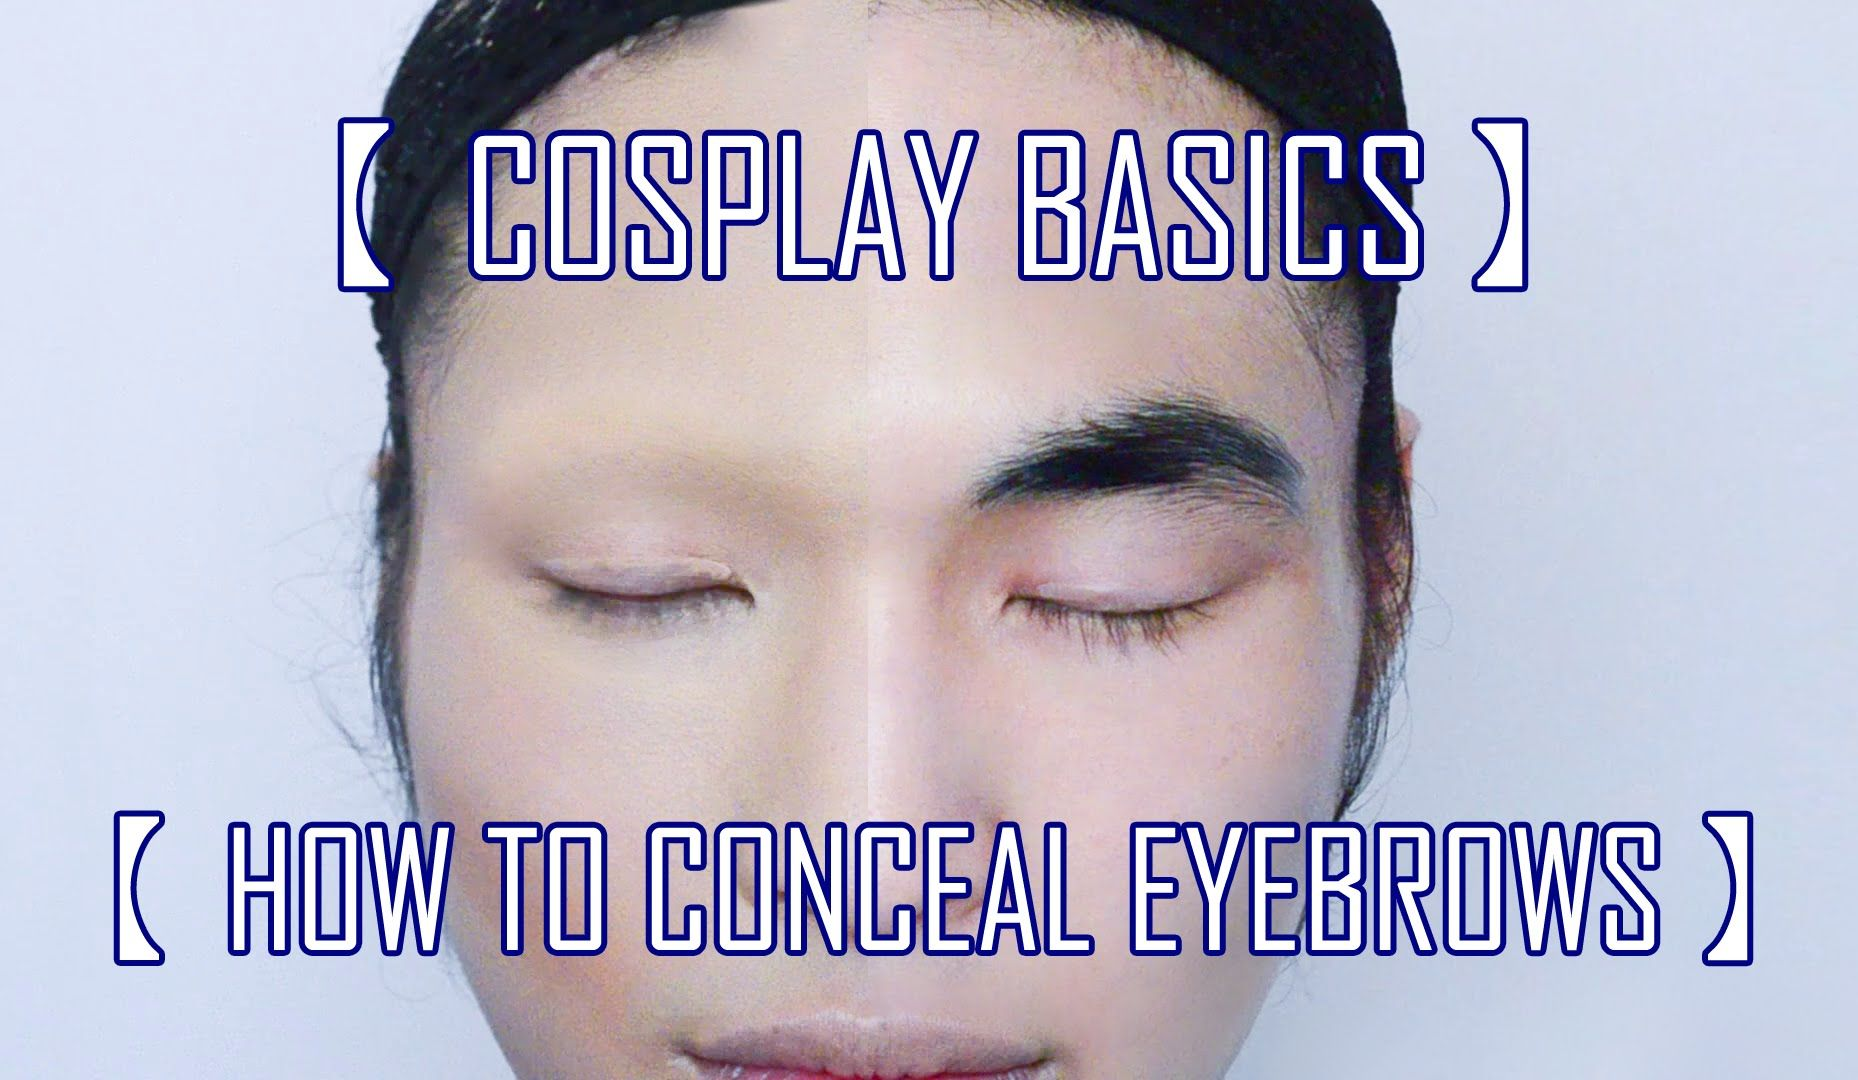 [Cosplay Basics] 1 How to Conceal Eyebrows Cosplay